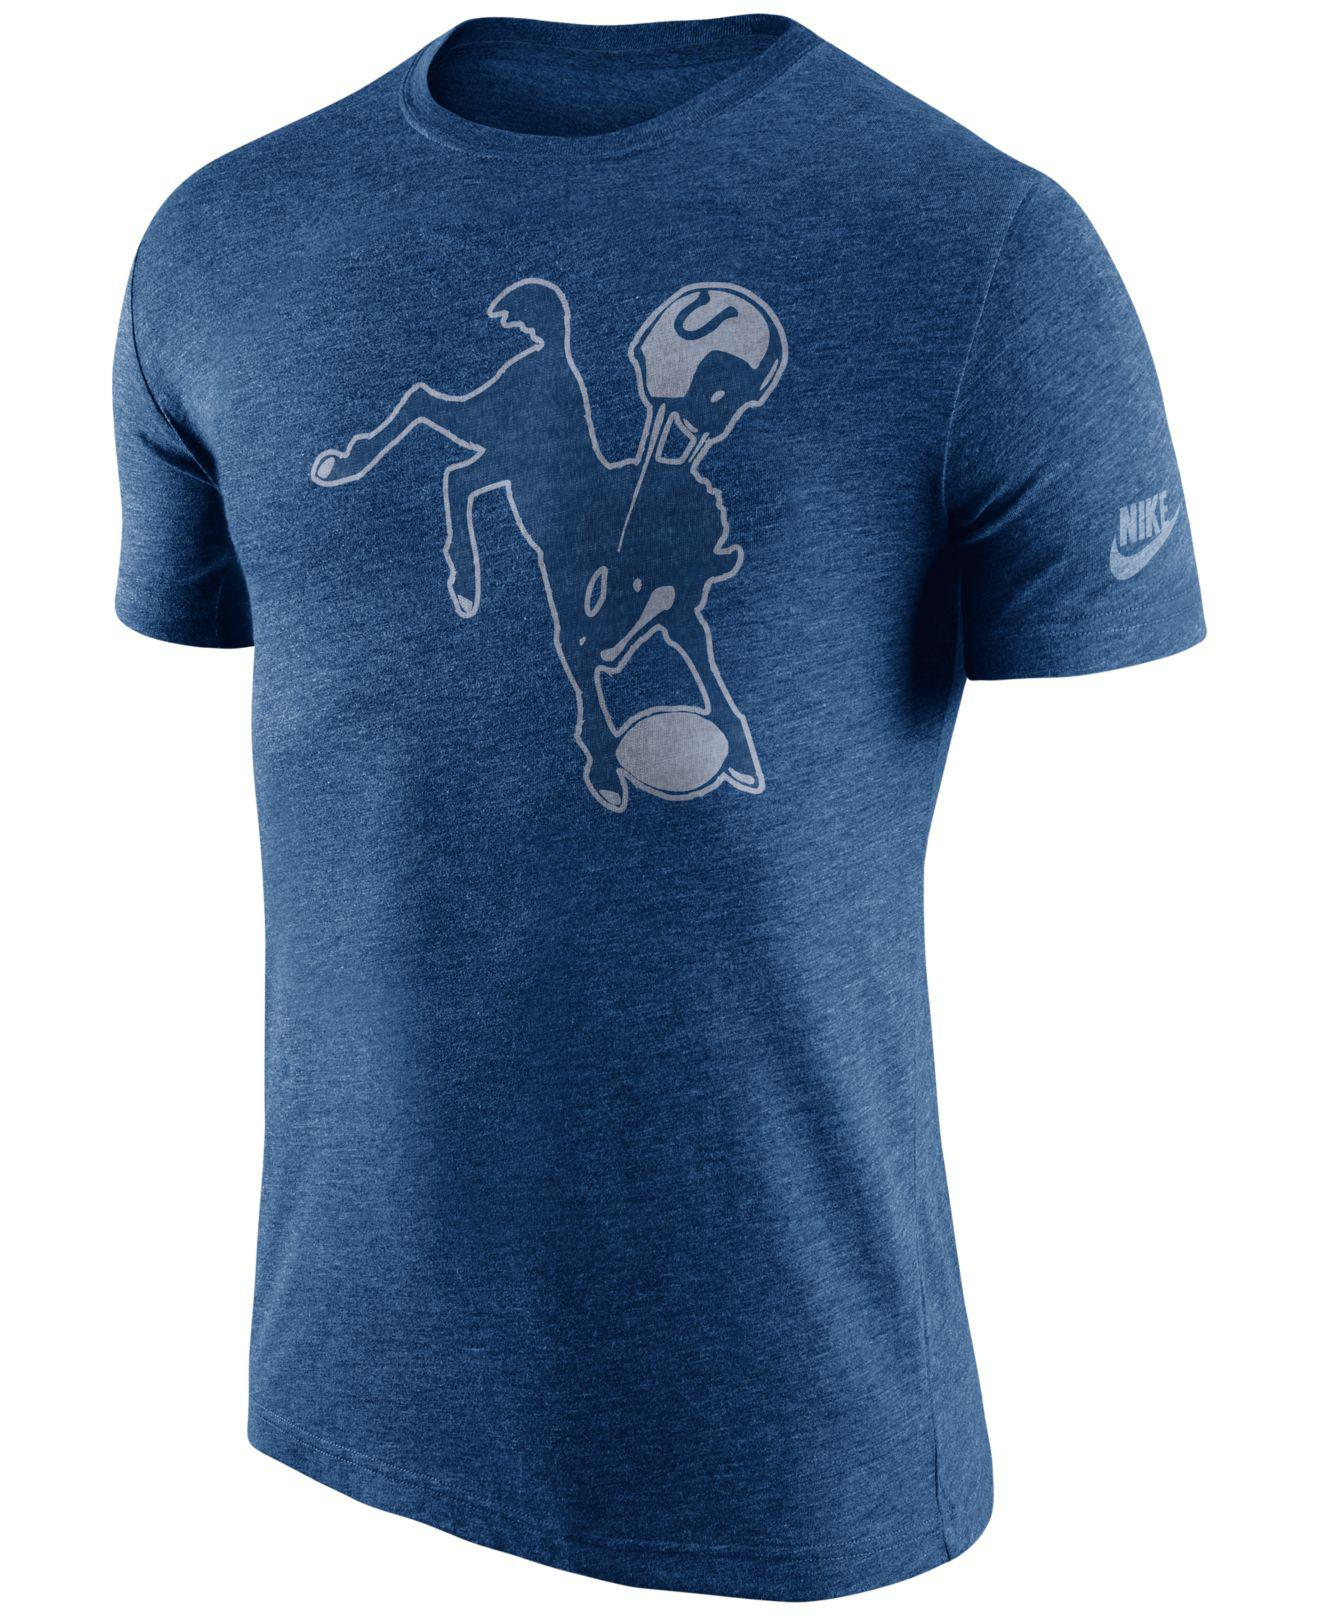 Lyst - Nike Men s Indianapolis Colts Historic Logo T-shirt in Blue ... b17a33e36